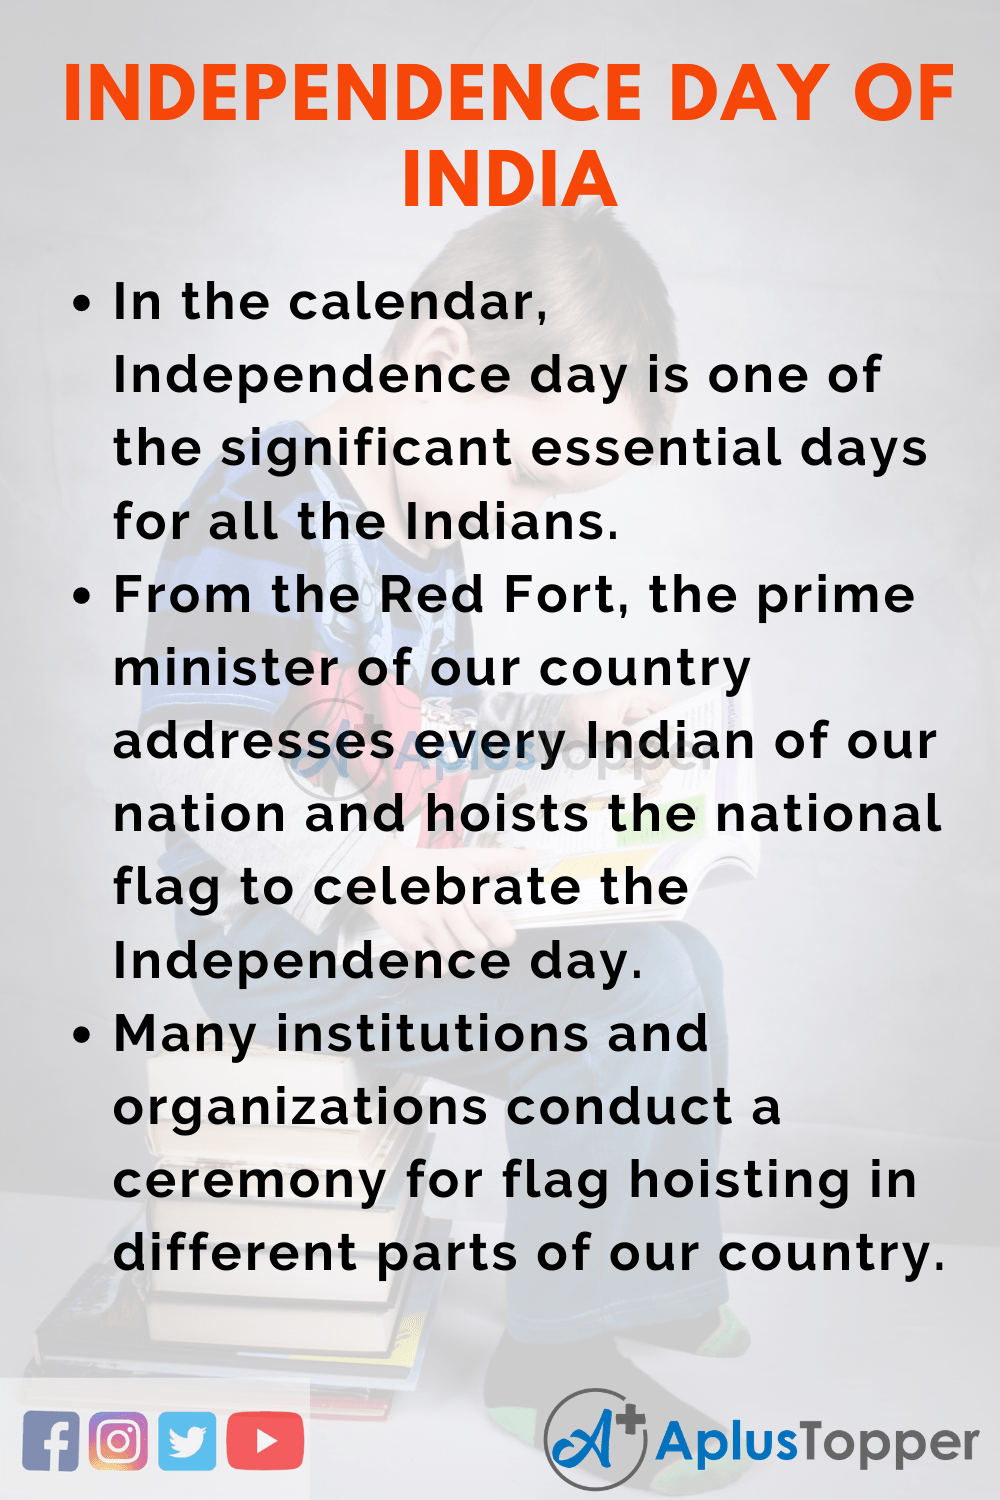 10 Lines On Independence Day Of India for Higher Class Students